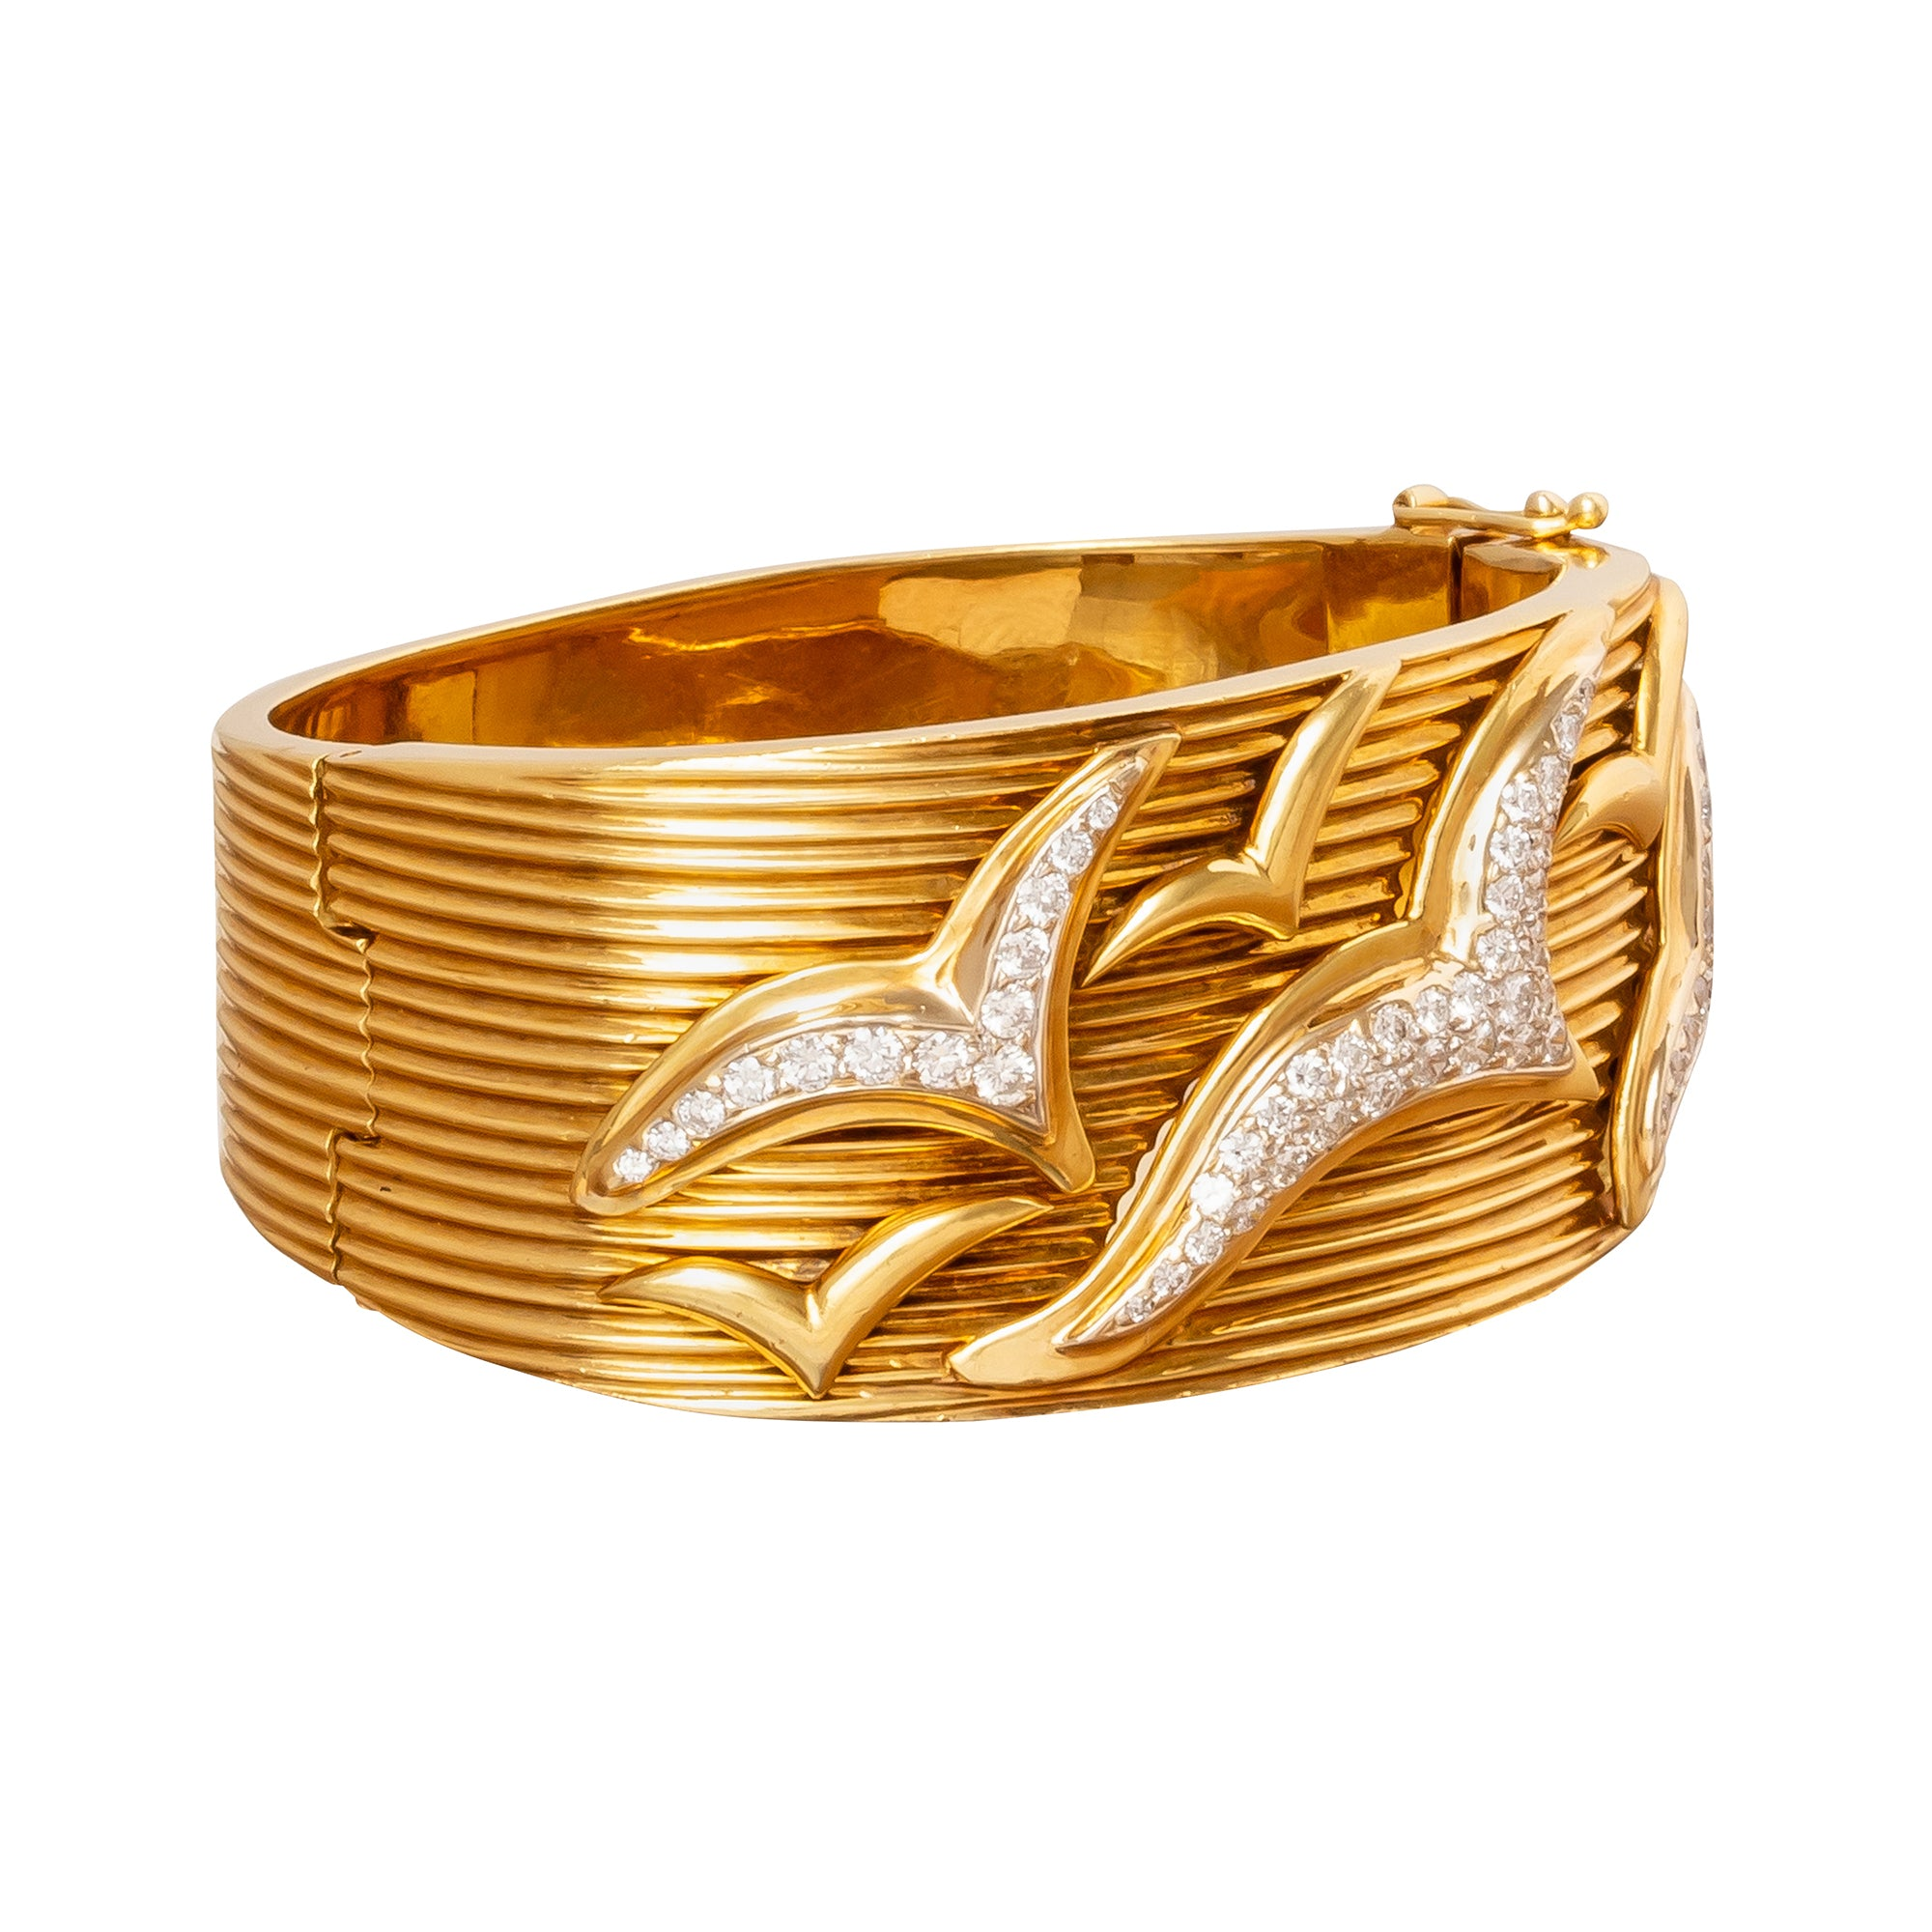 Diamond Seagulls Cuff - Antique & Vintage Jewelry - Bracelets | Broken English Jewelry